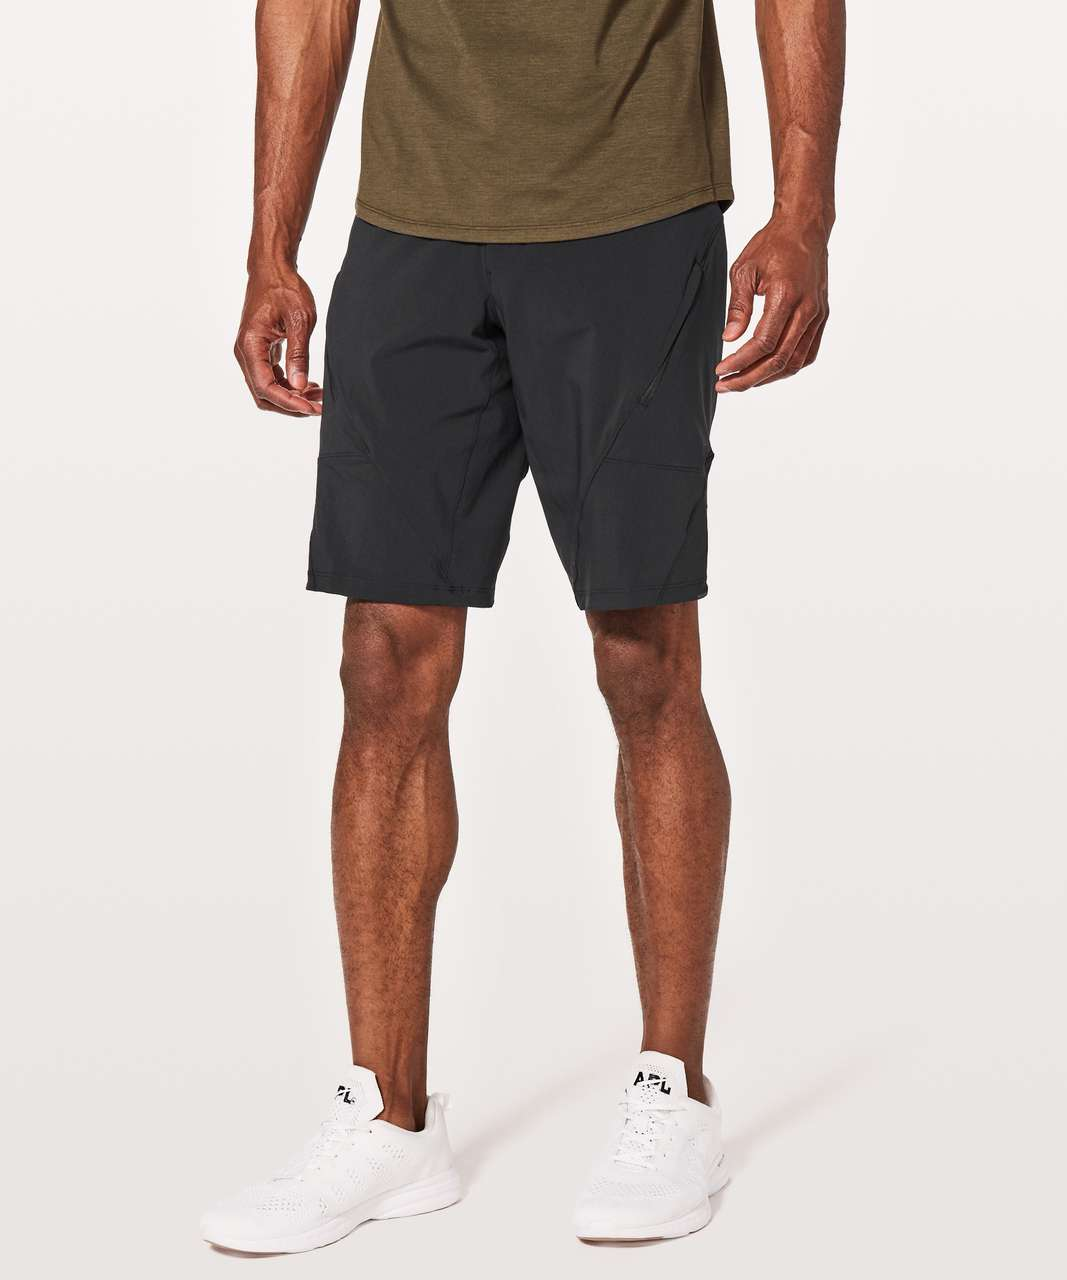 "Lululemon Mountain Side Shorts *11"" - Black"